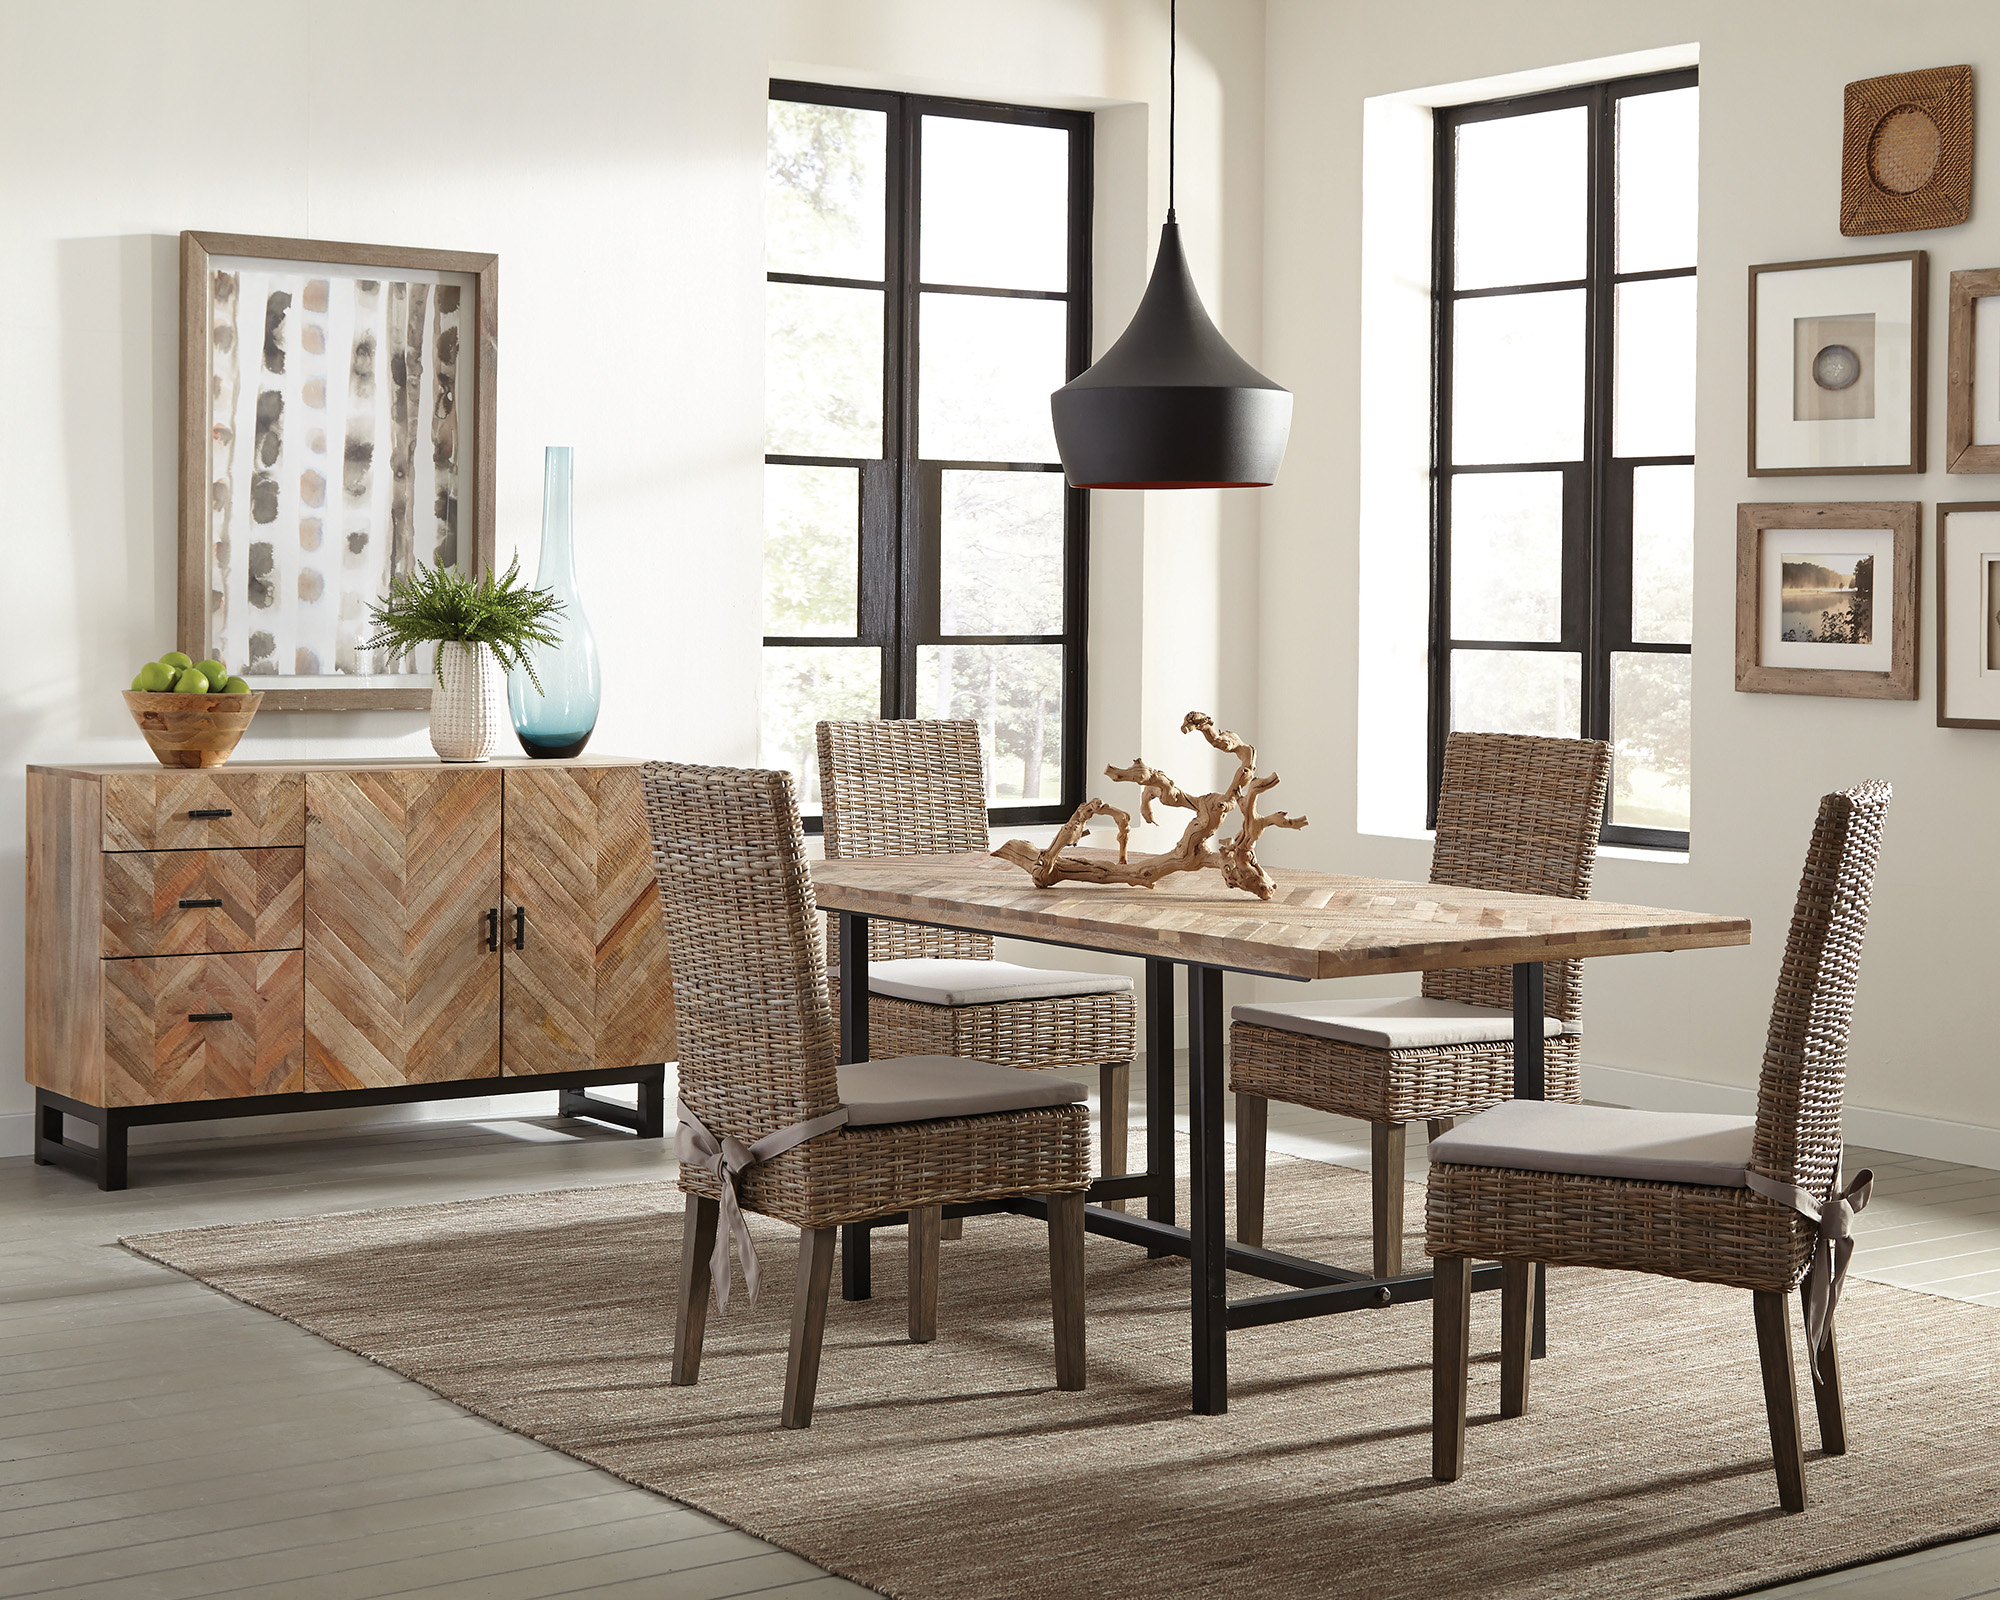 Sideboards & Buffets: Dining Room Furniture – Goedeker's Intended For Contemporary Multi Storage Dining Buffets (View 20 of 20)